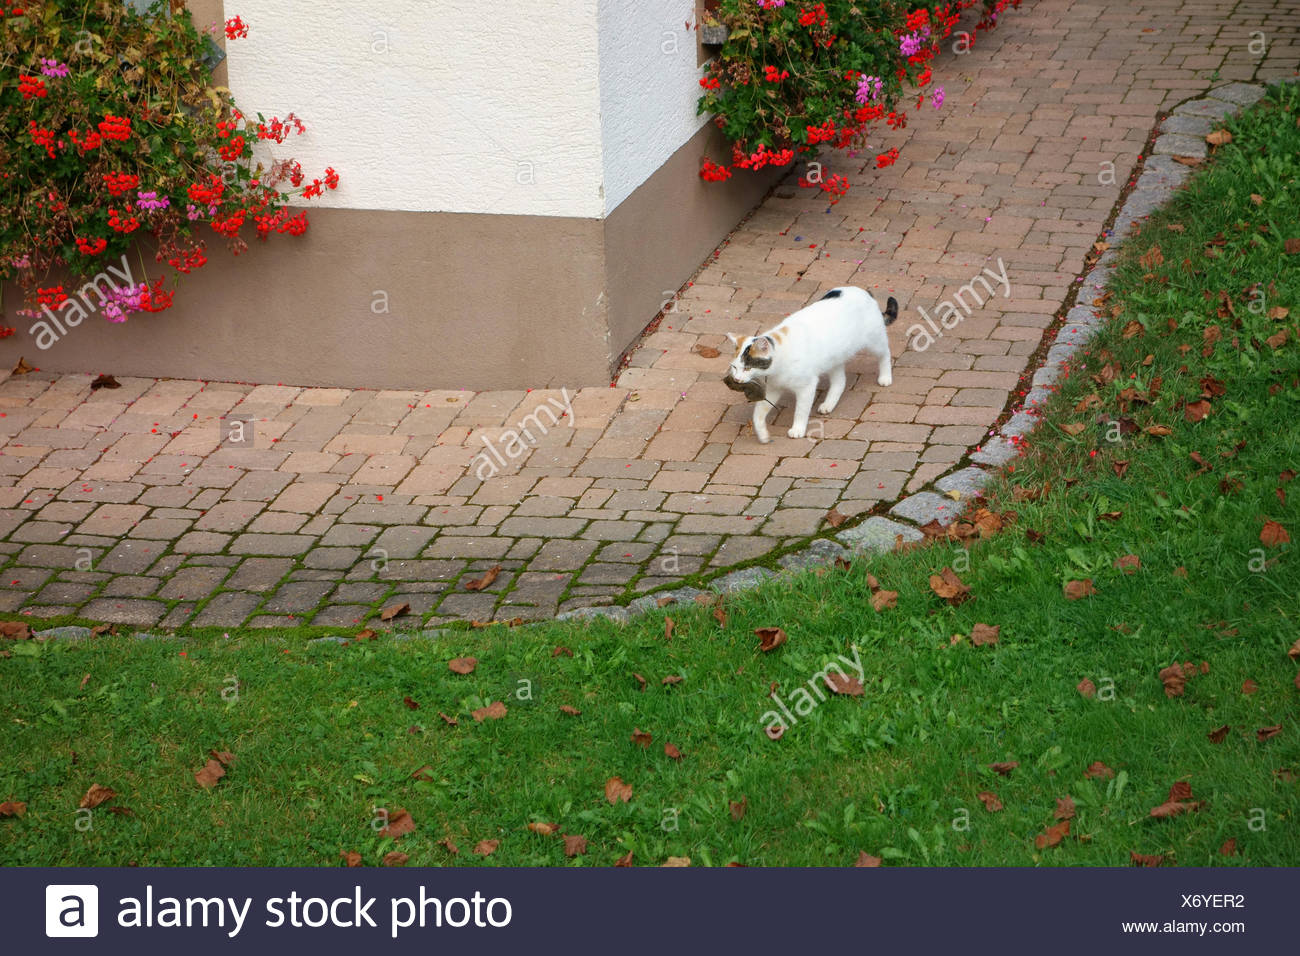 cat hast killed a mouse - Stock Image